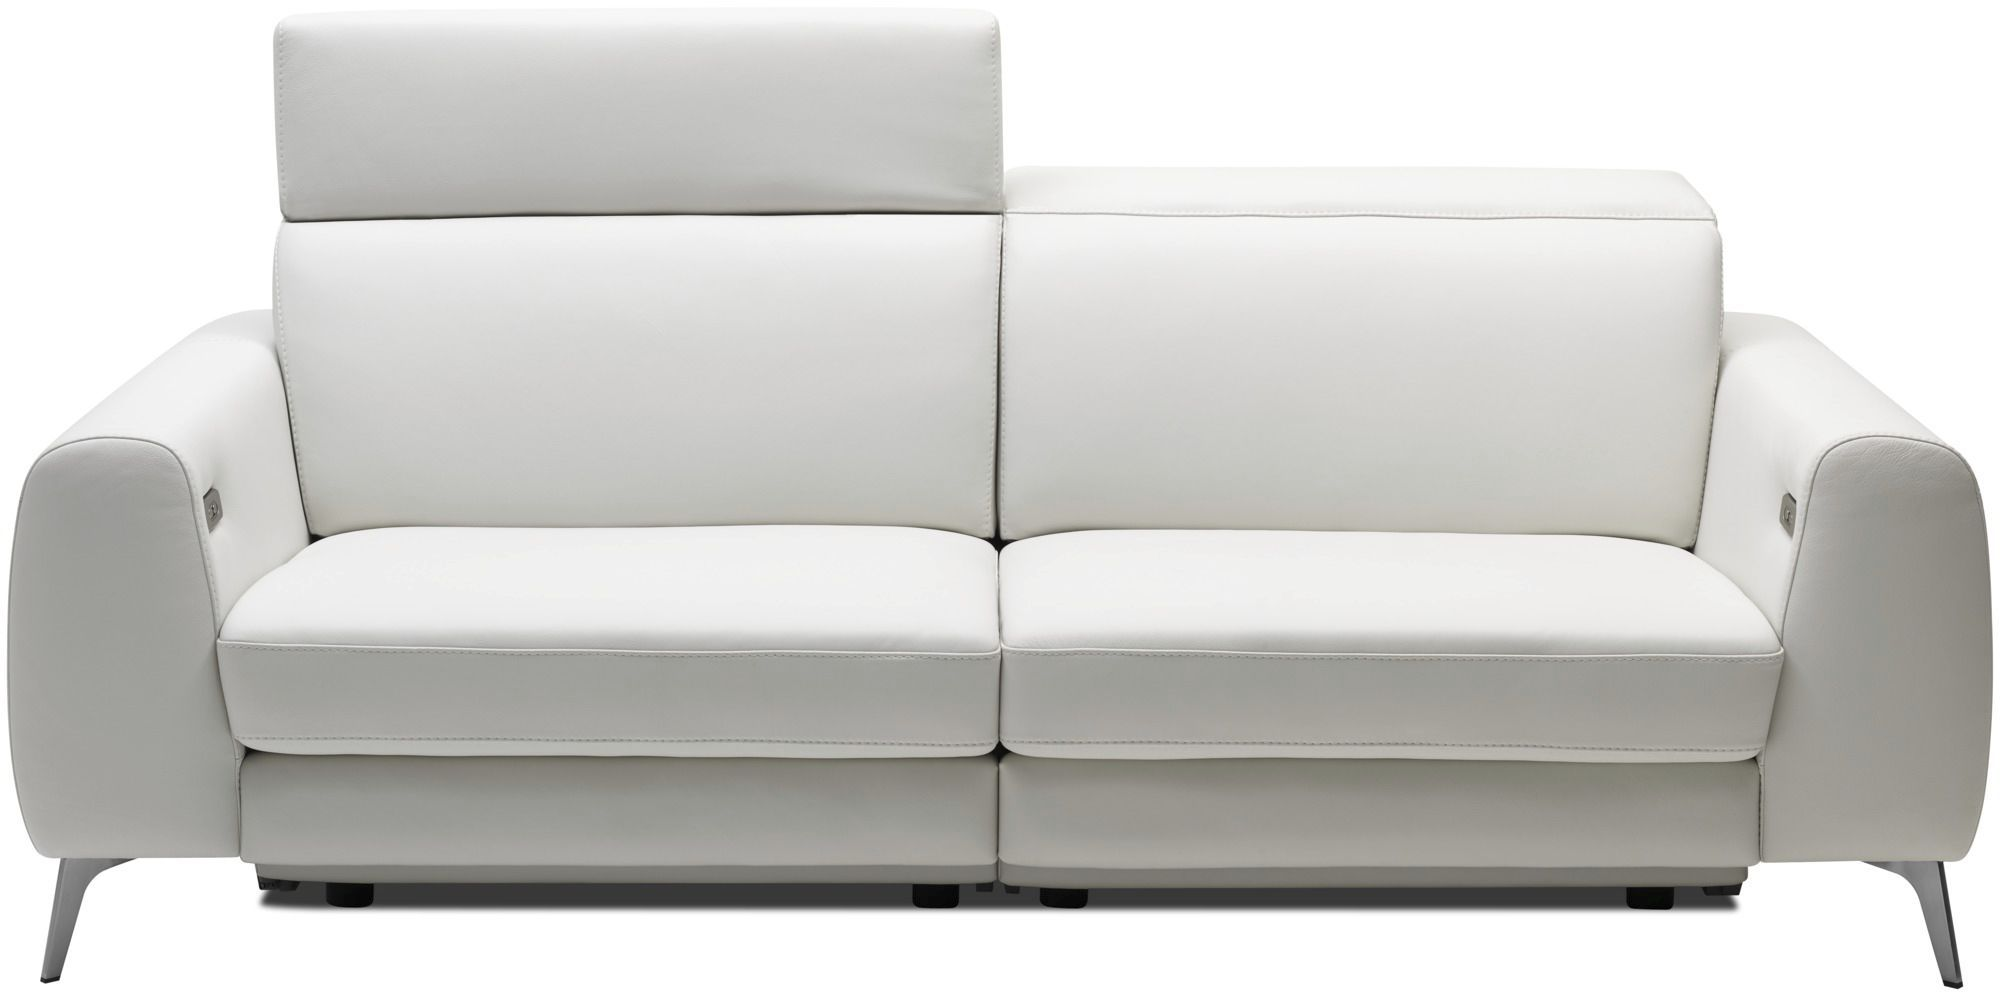 Modular sofa corner contemporary leather MADISON by Anders